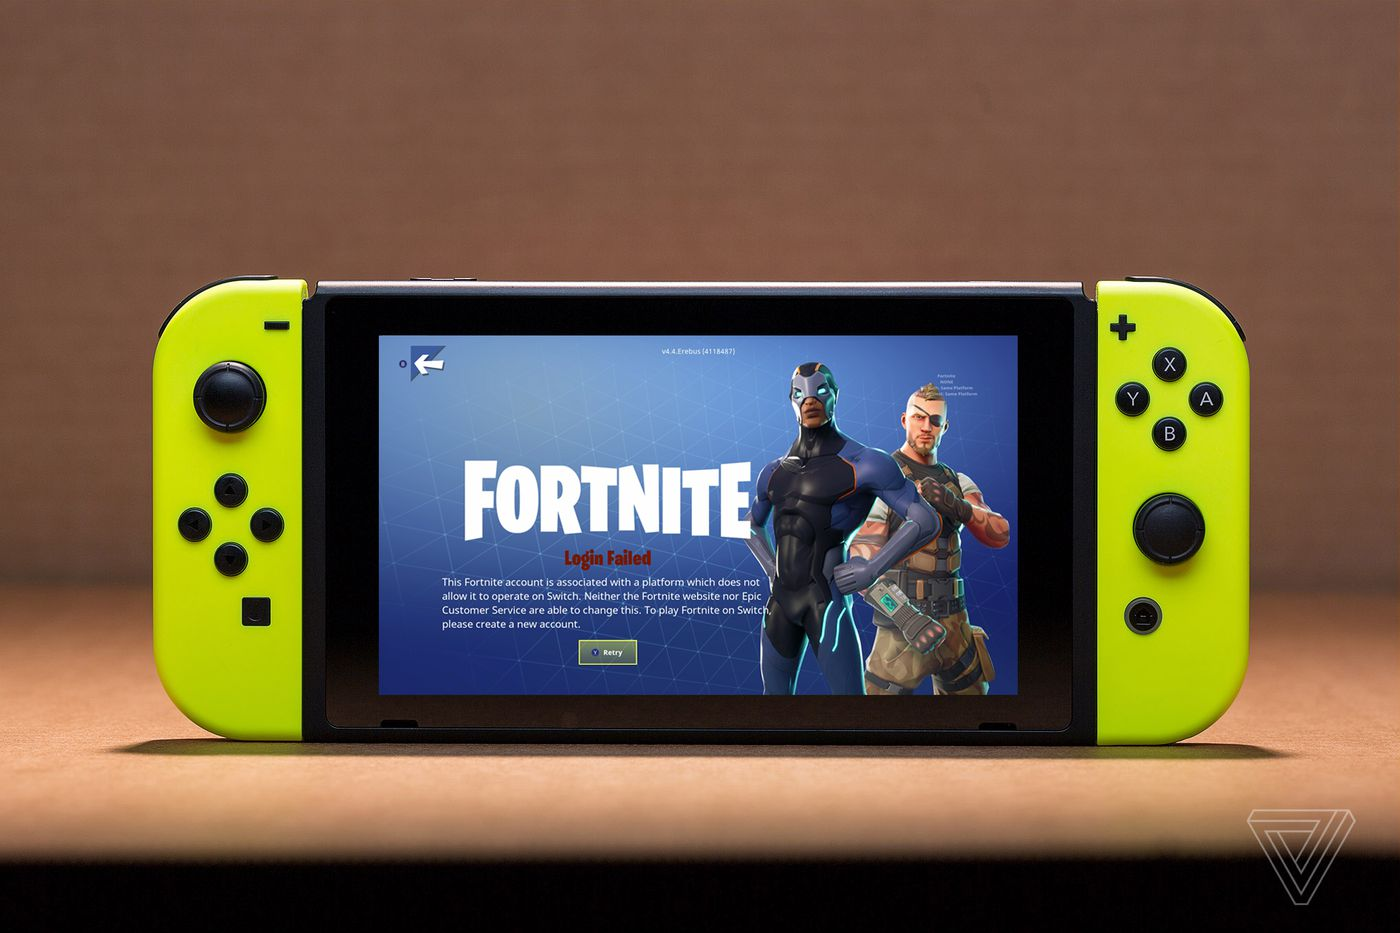 Why Can T I Buy Fortnite On Ps4 Sony Issues Weak Response To Fortnite Cross Play Controversy On Ps4 And Switch The Verge